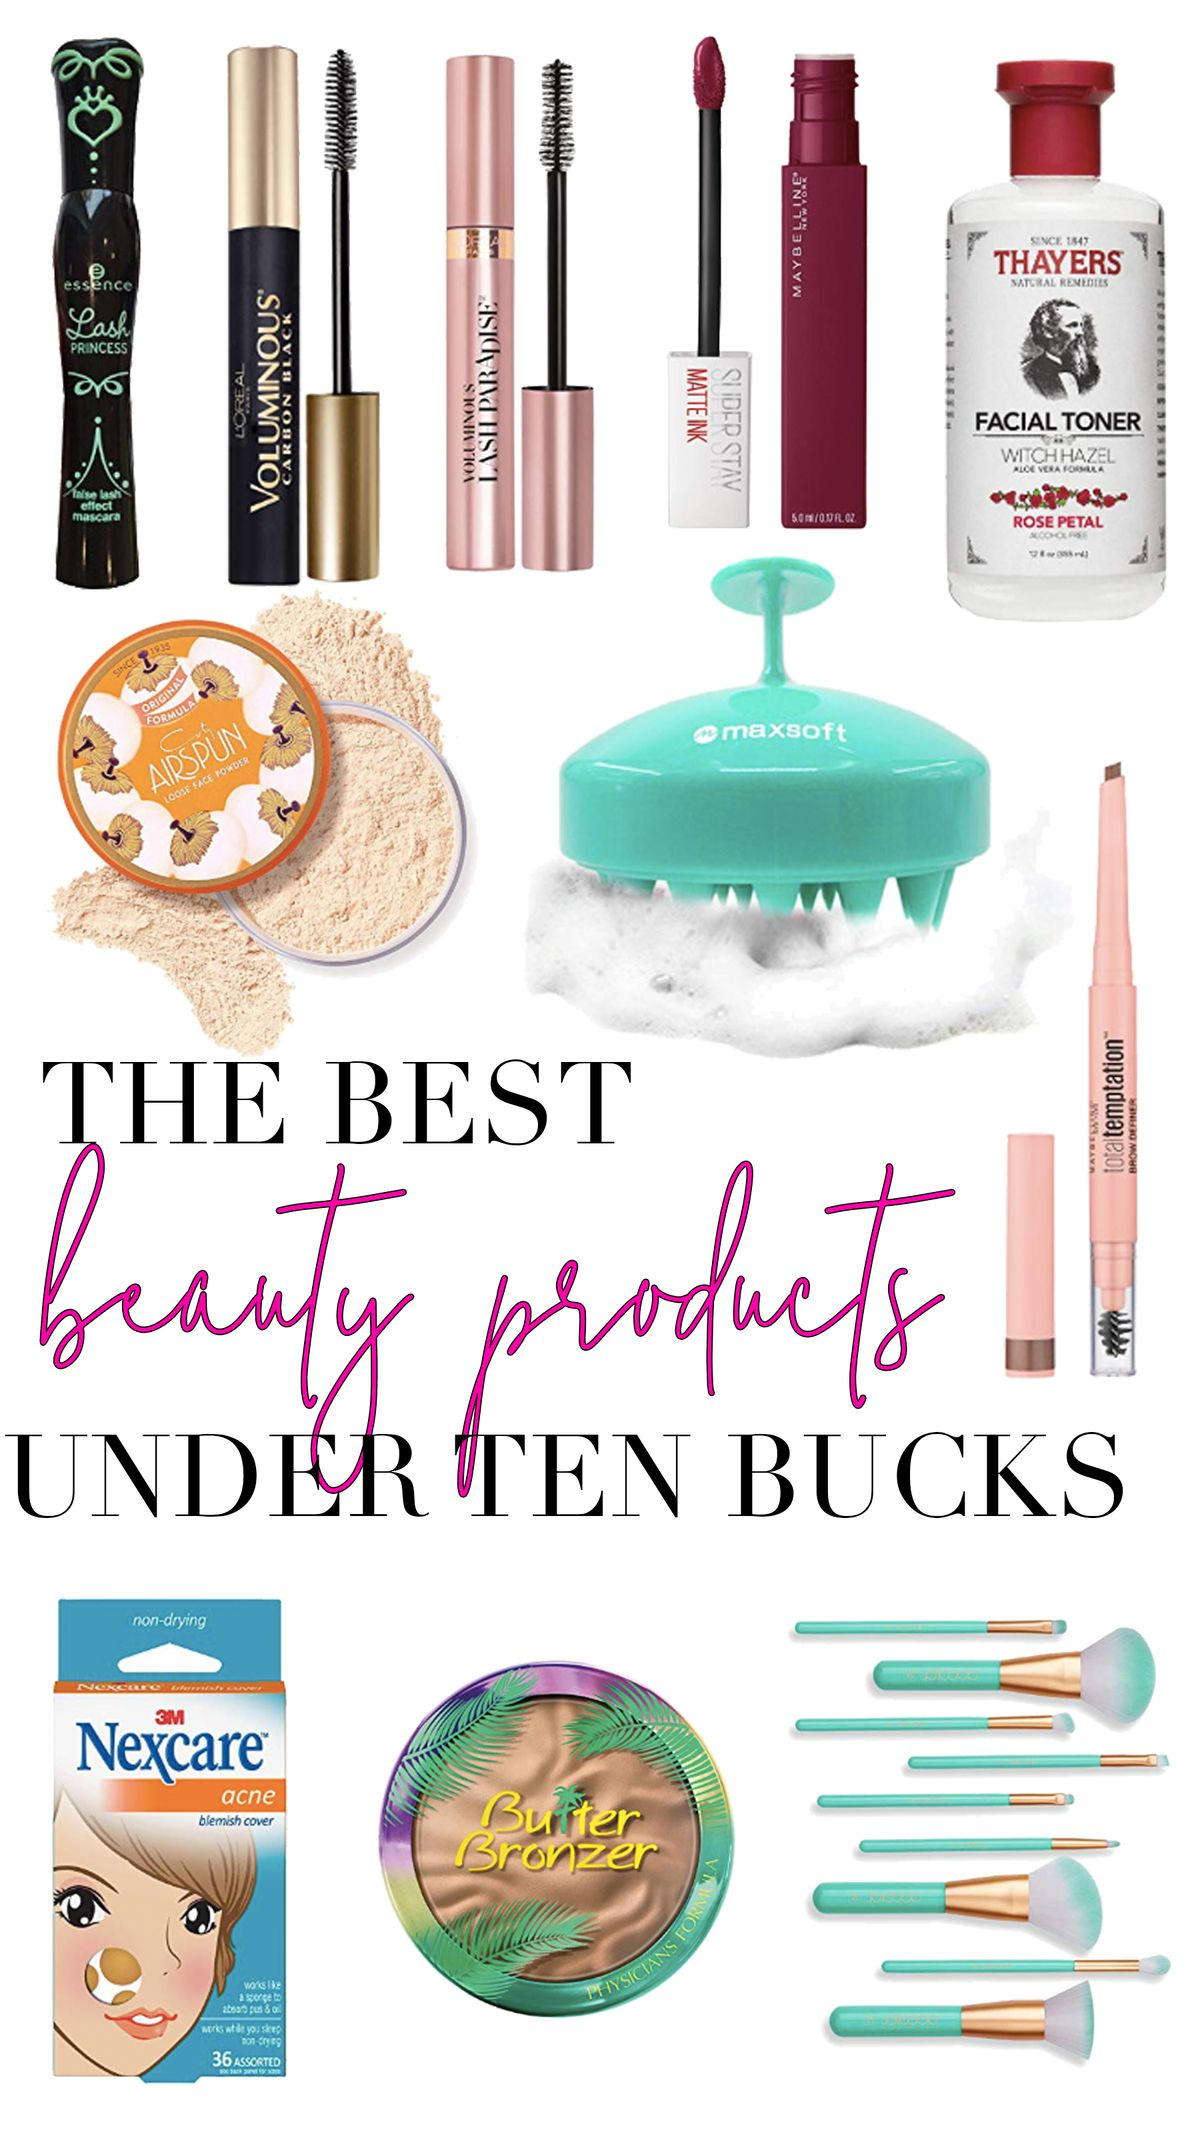 Check out these must have beauty products all for under $20!